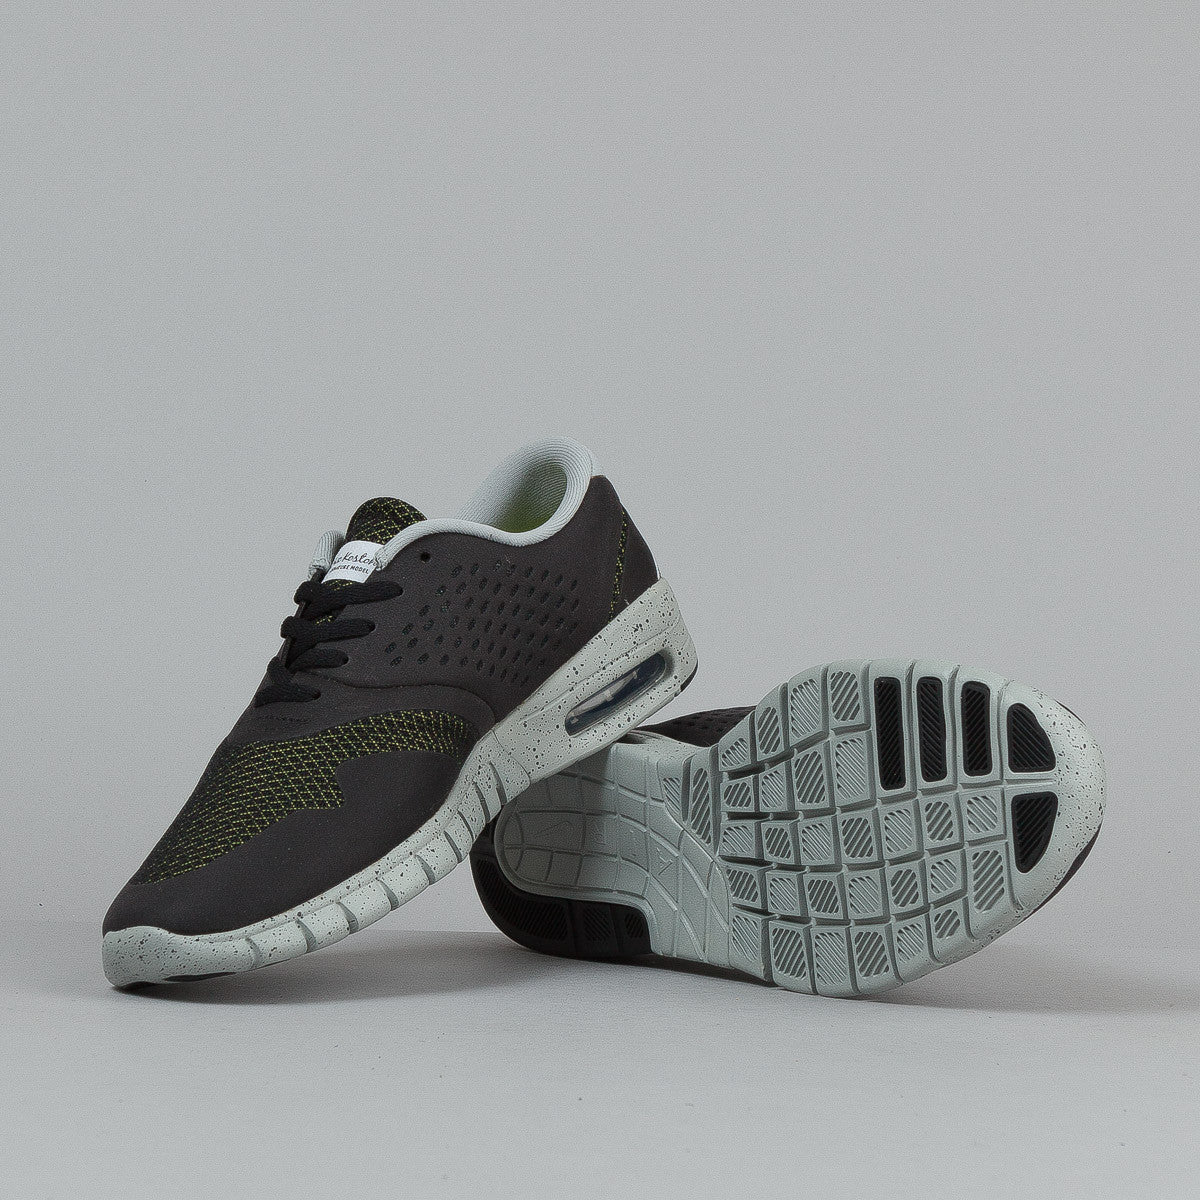 Nike SB Eric Koston 2 Max Black / White - Base Grey - Venom Green